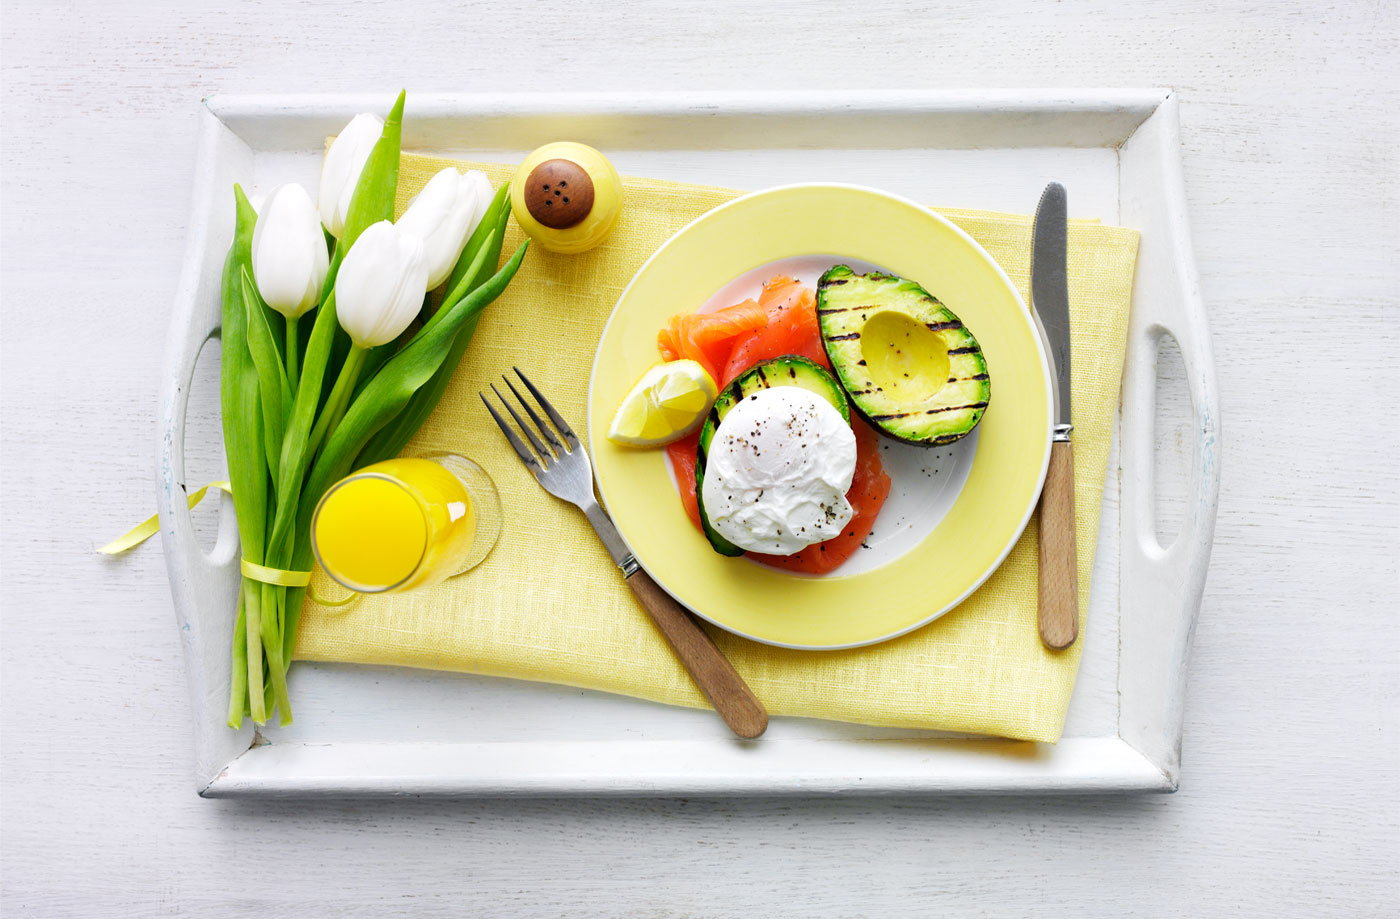 Griddled avocado, poached egg and smoked salmon recipe